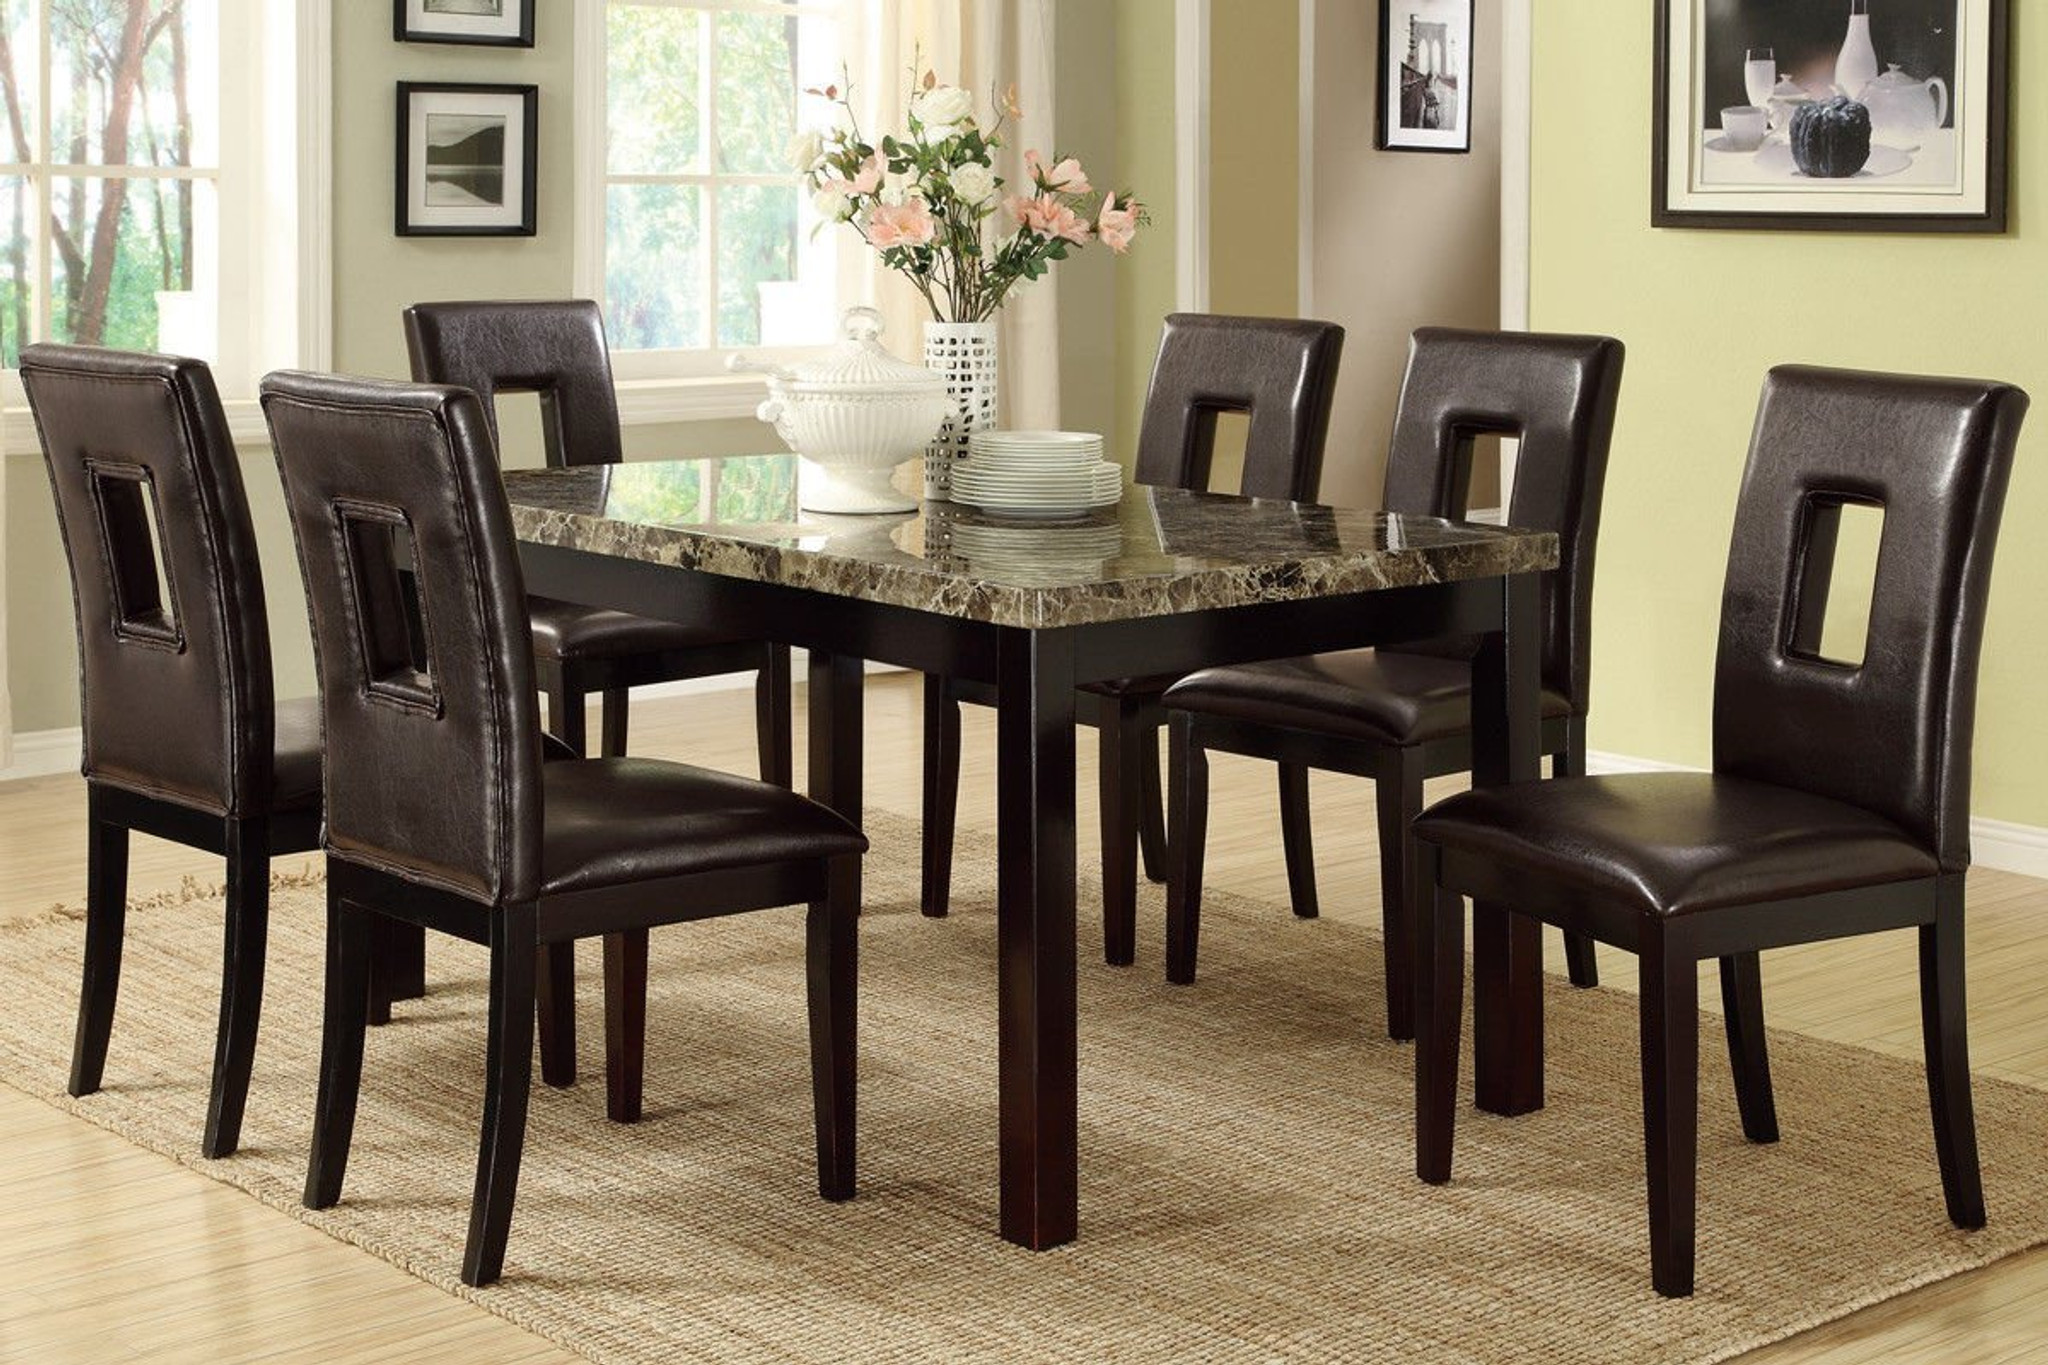 7PCS DARK BROWN MARBLE LOOK TABLE TOP DINING ROOM SET